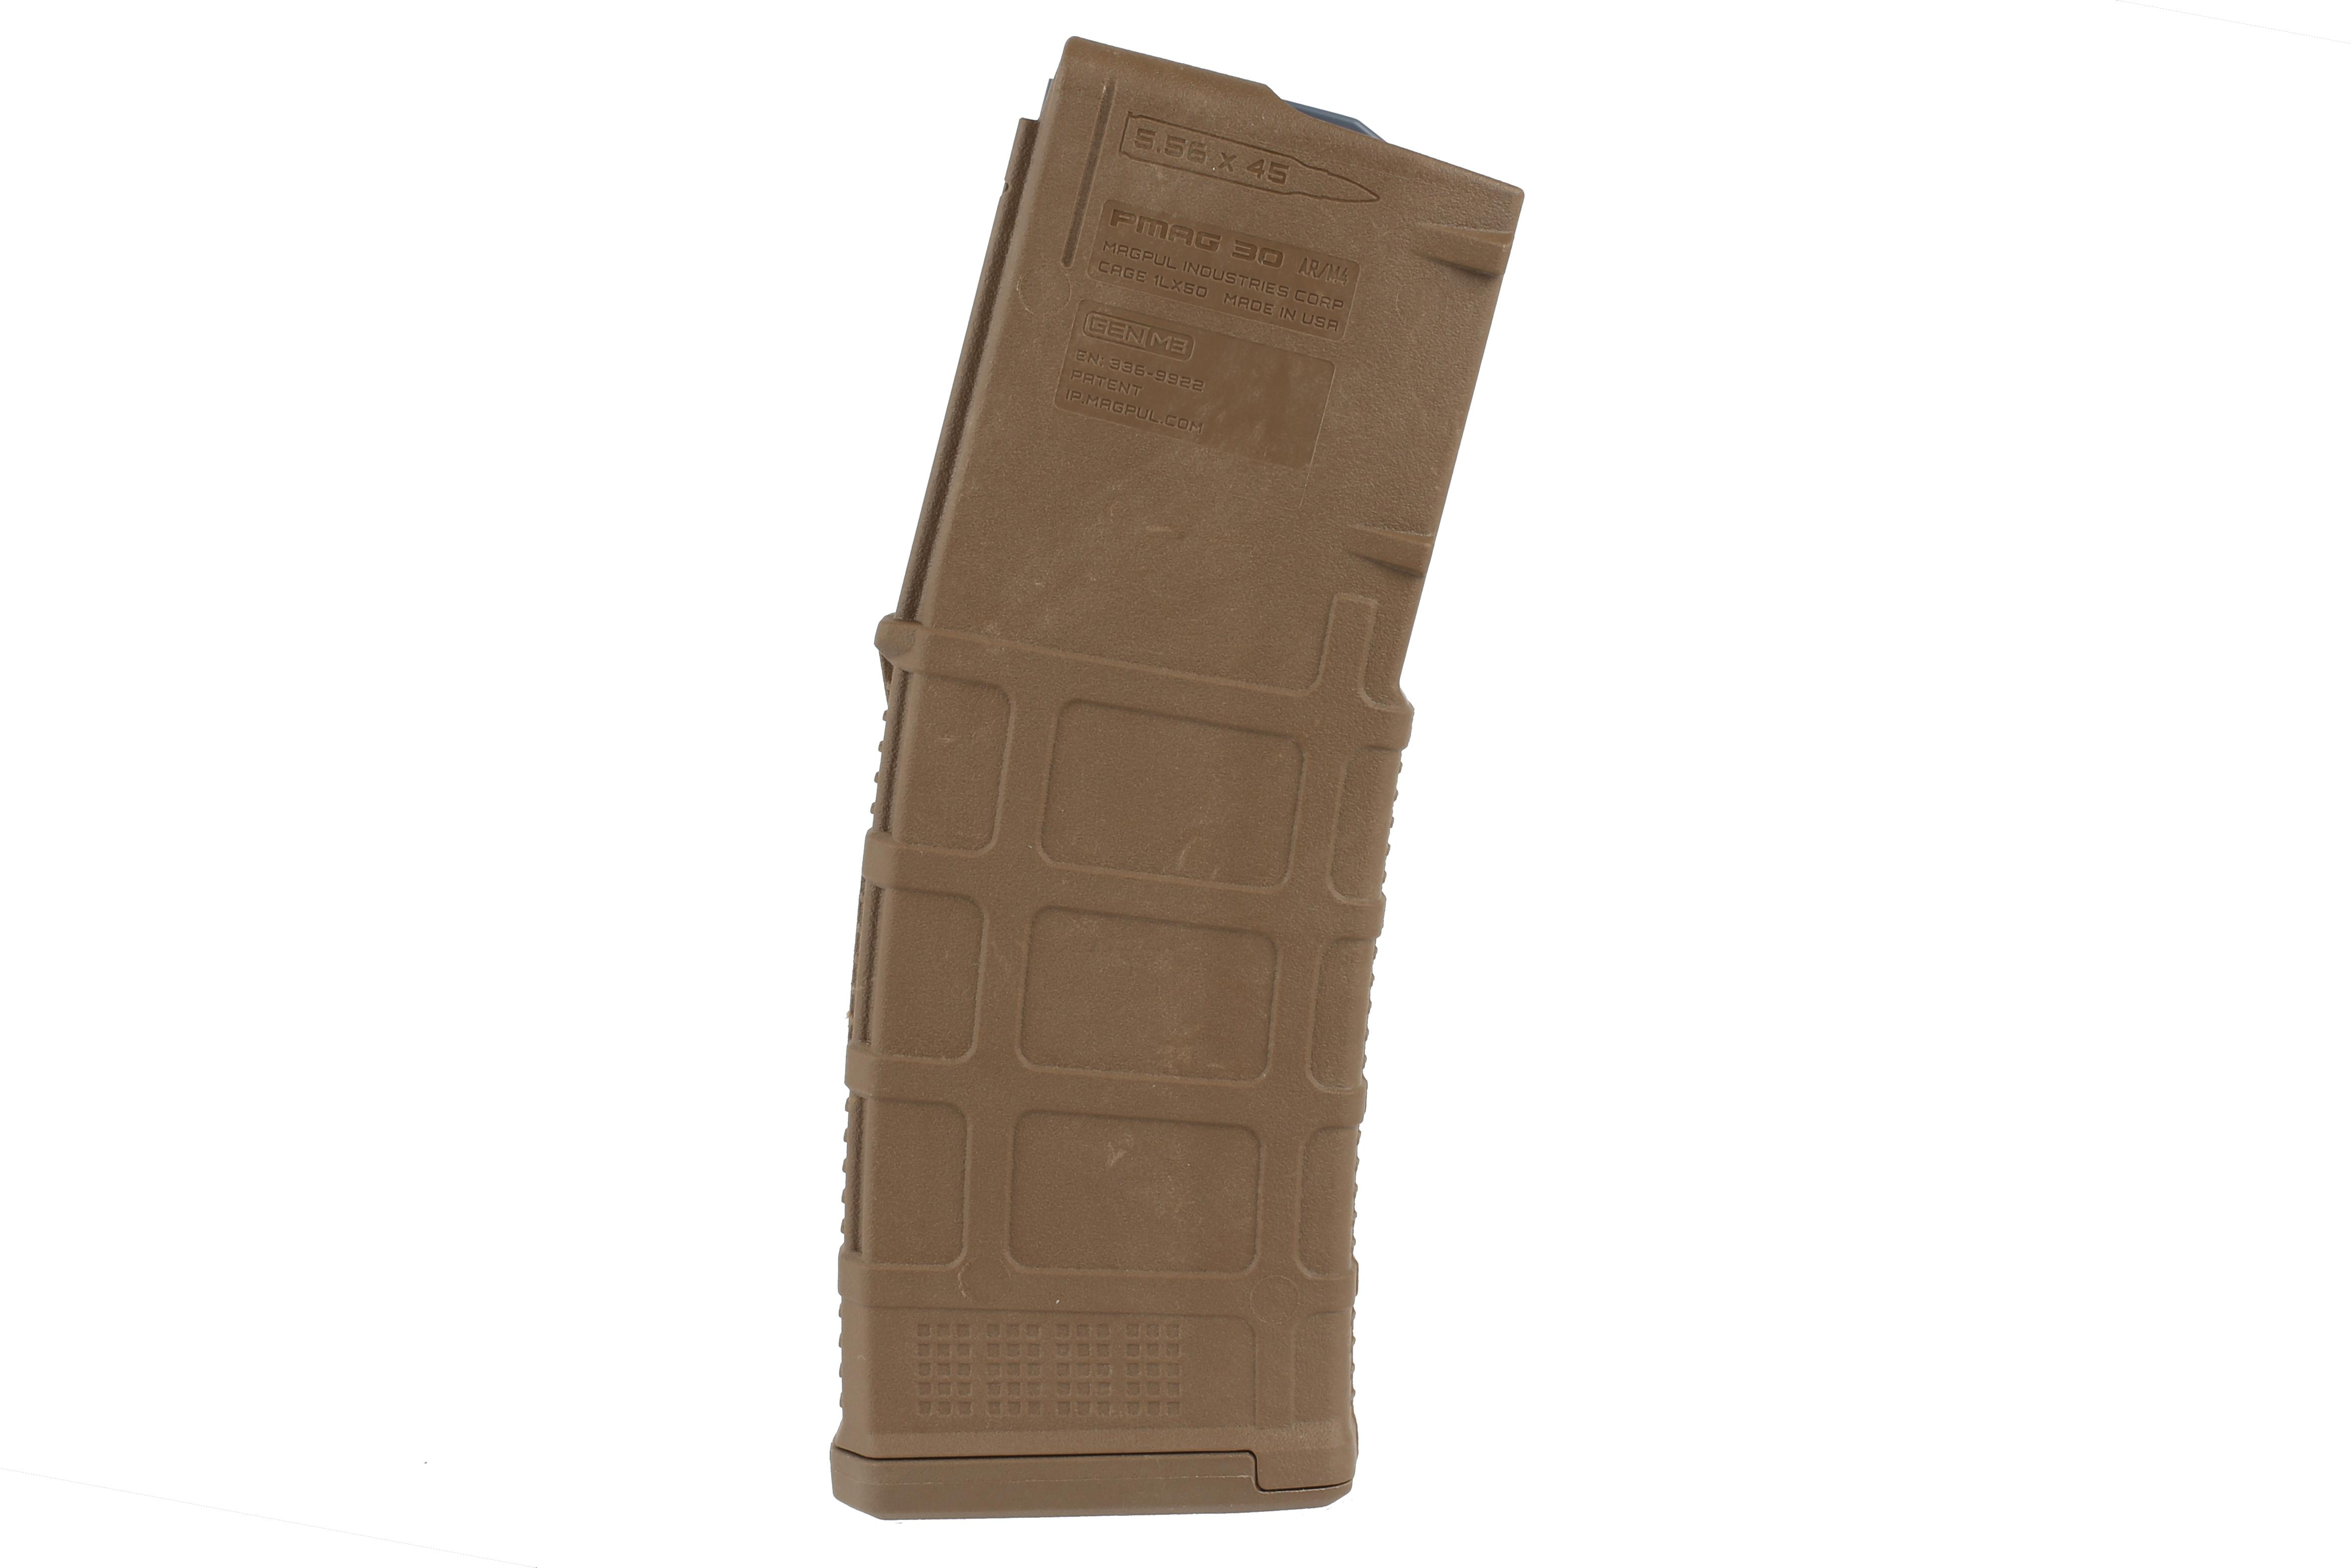 The PMAG 30 AR15 and M4 GEN M3 5.56 NATO Magpul Magazine features an aggressive polymer texture